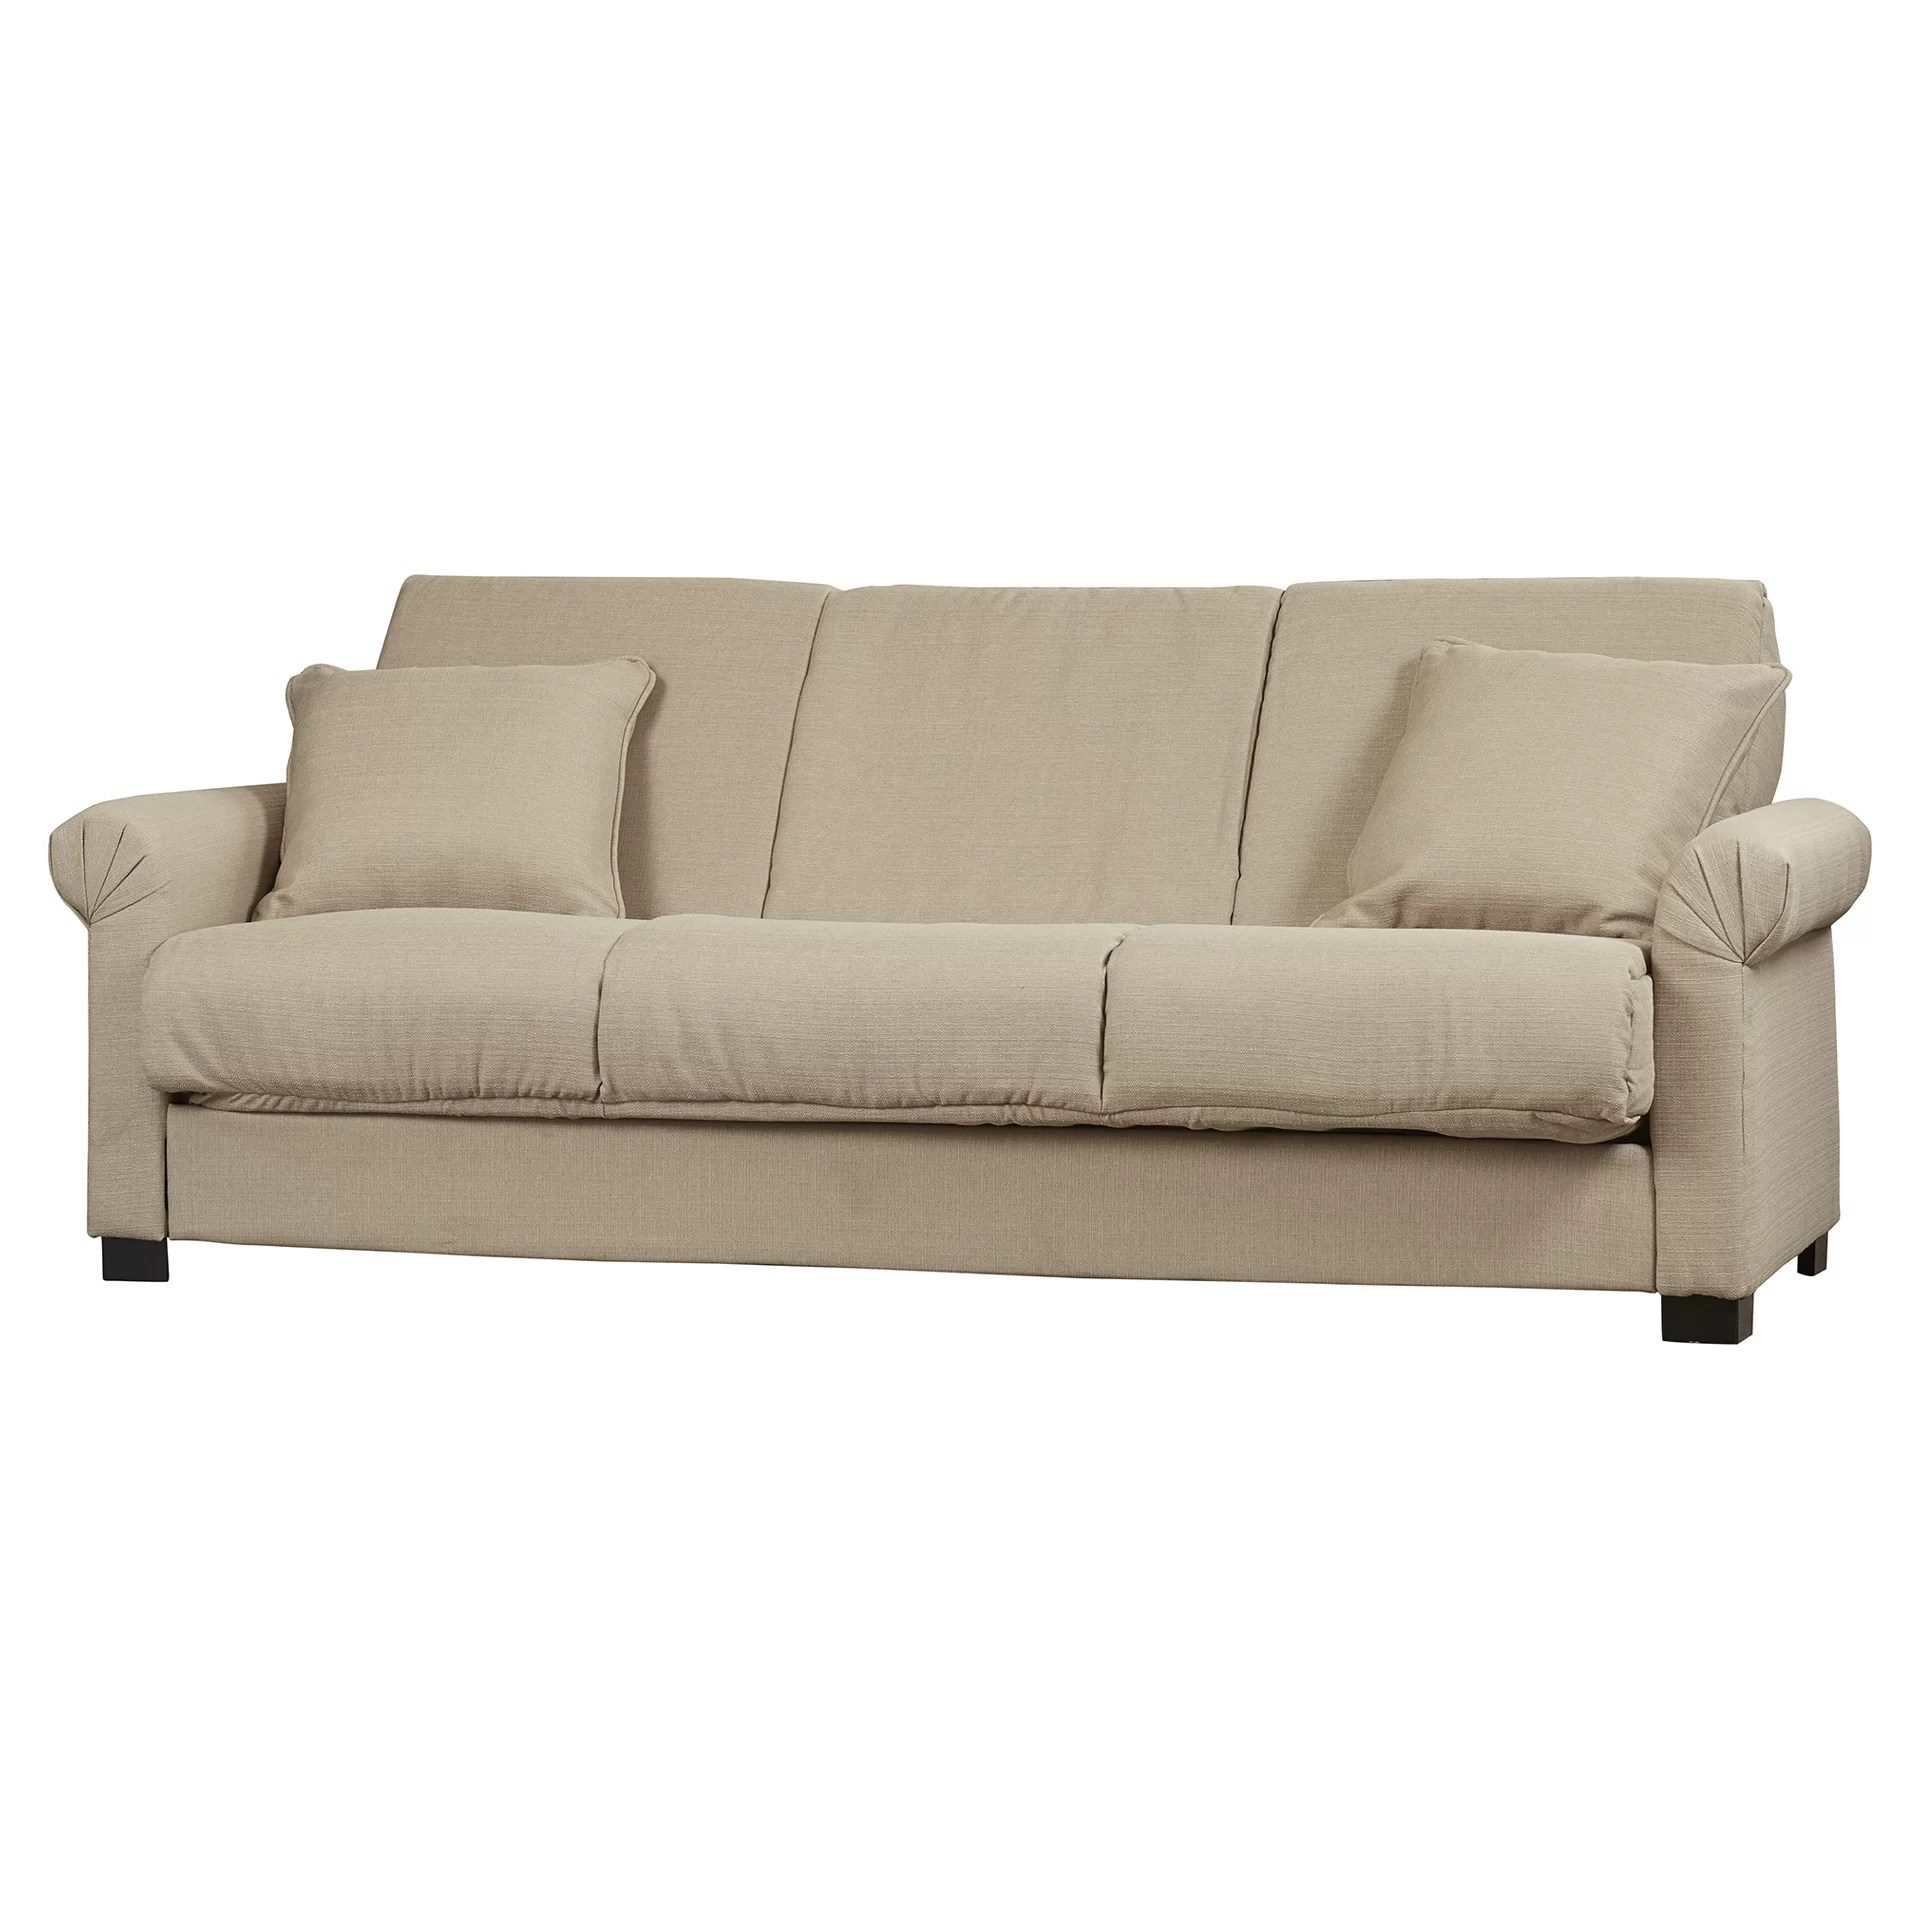 wayfair sleeper sofa full inflatable double couch air bed alcott hill lawrence convertible upholstered